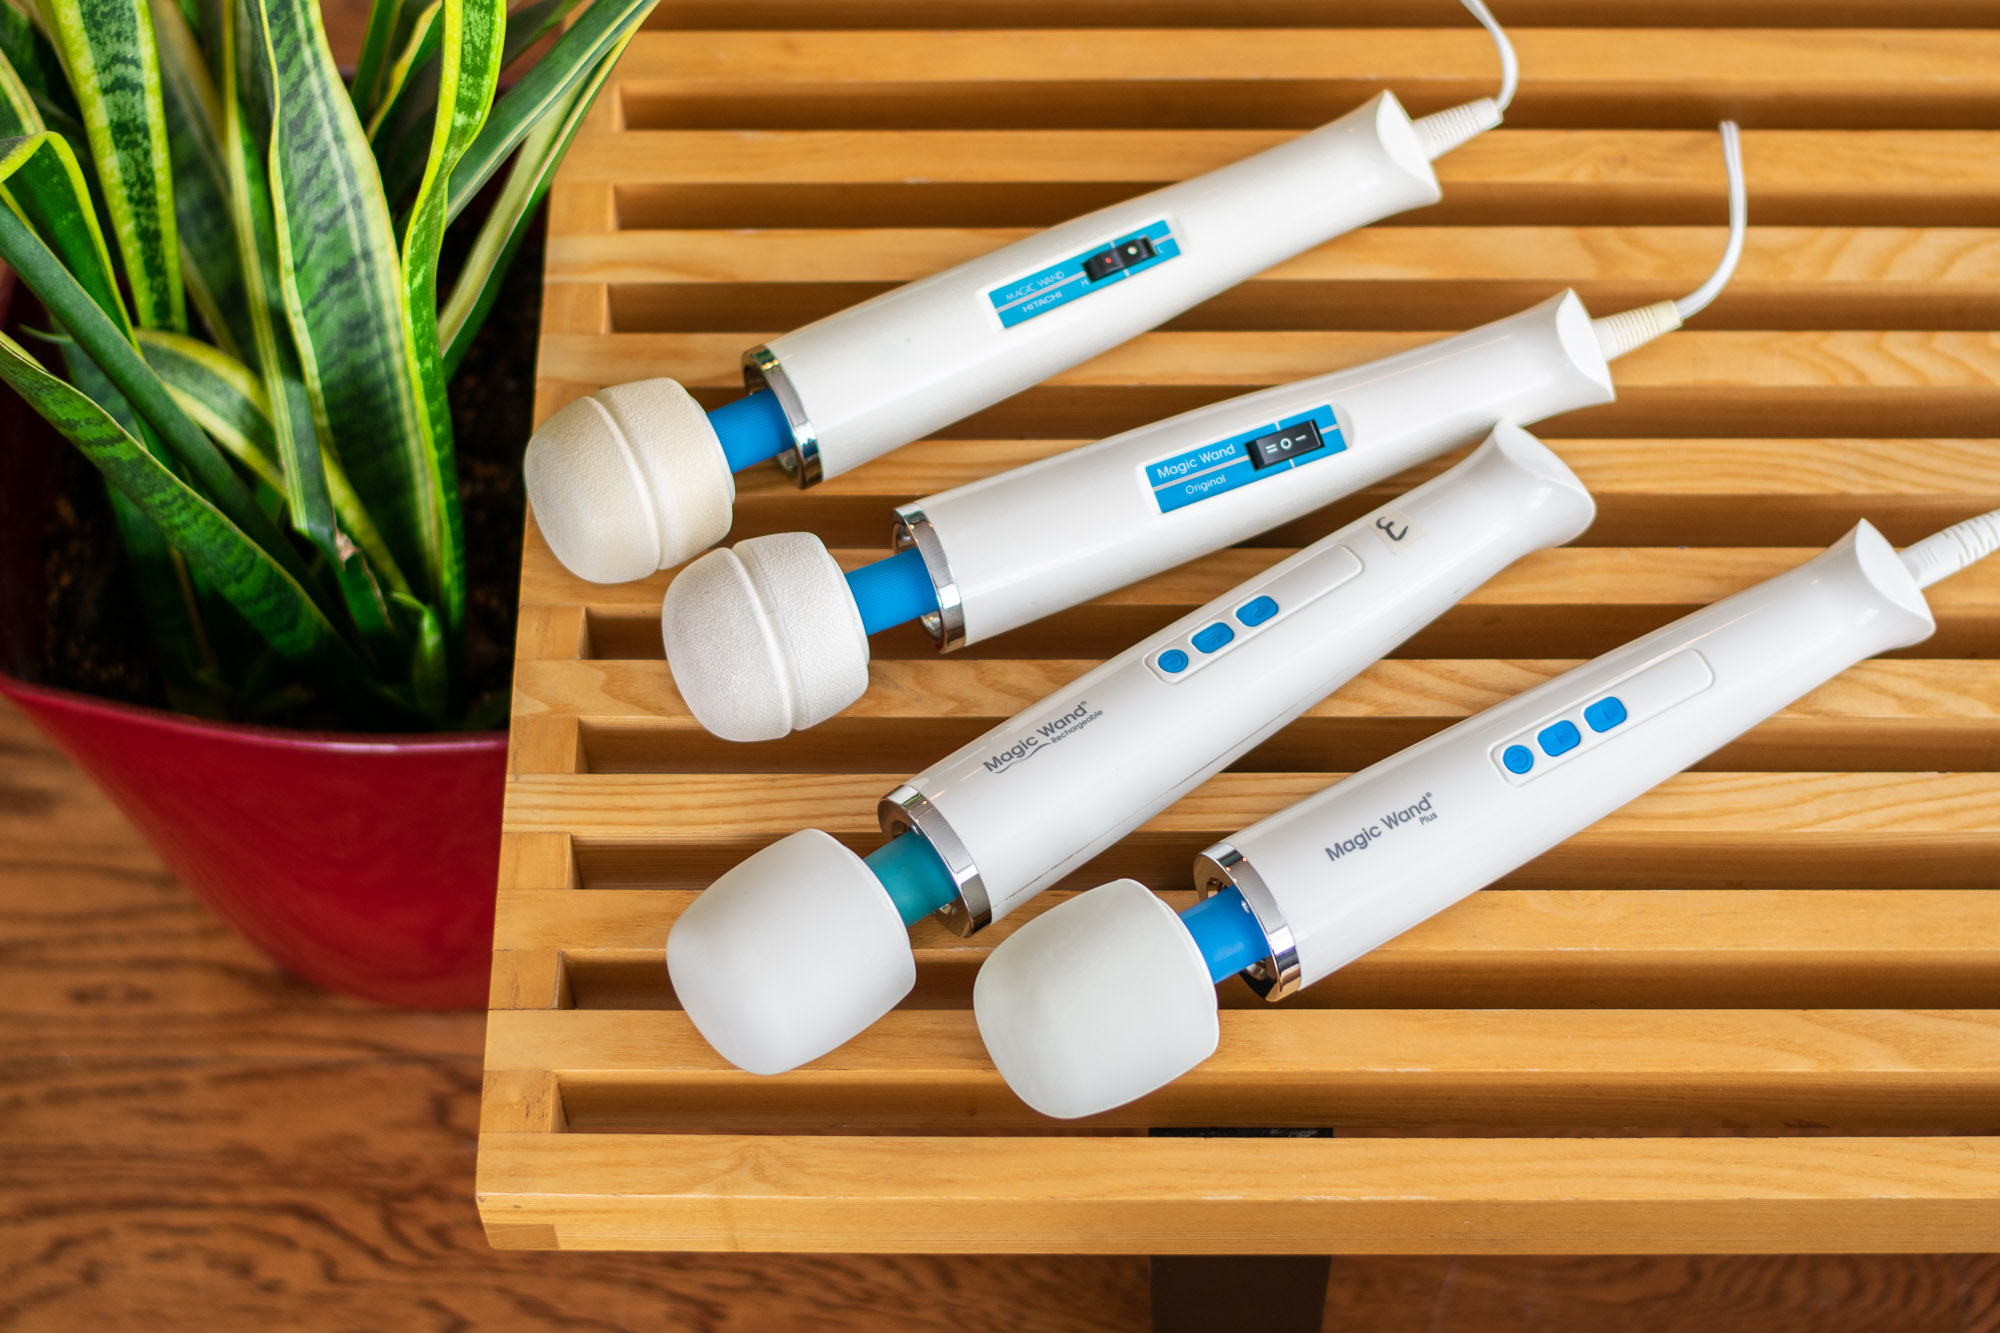 Four different iterations of the Hitachi Magic Wand vibrator, lying on top of a wooden bench near a green plant.